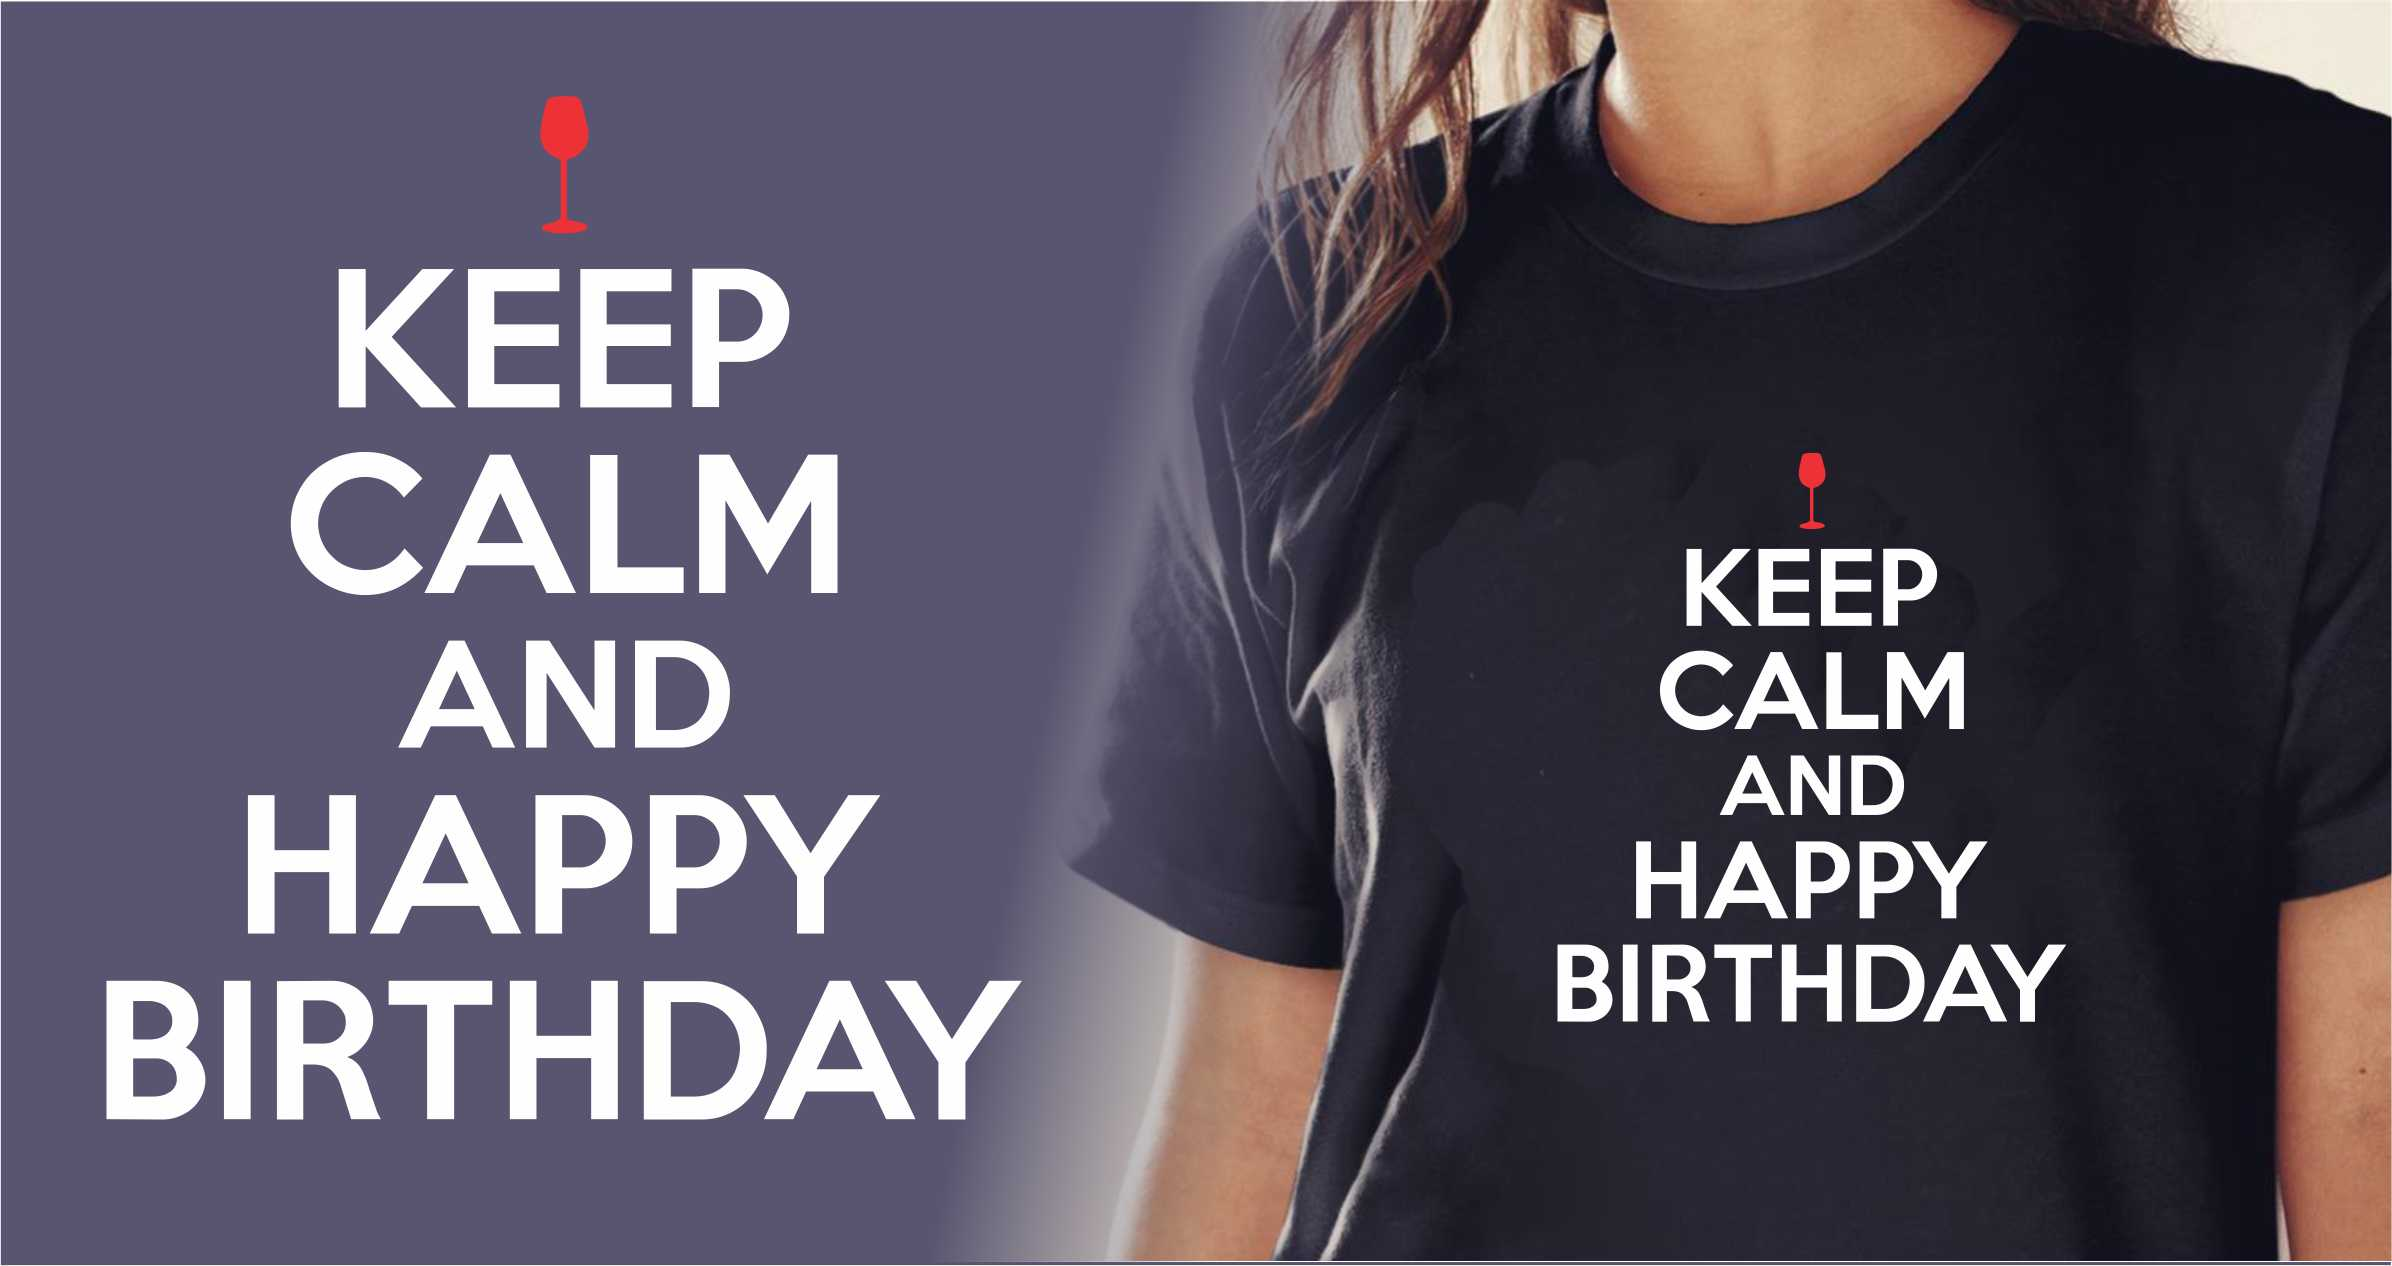 keep-calm-and-birthday-tshirt-pretoria